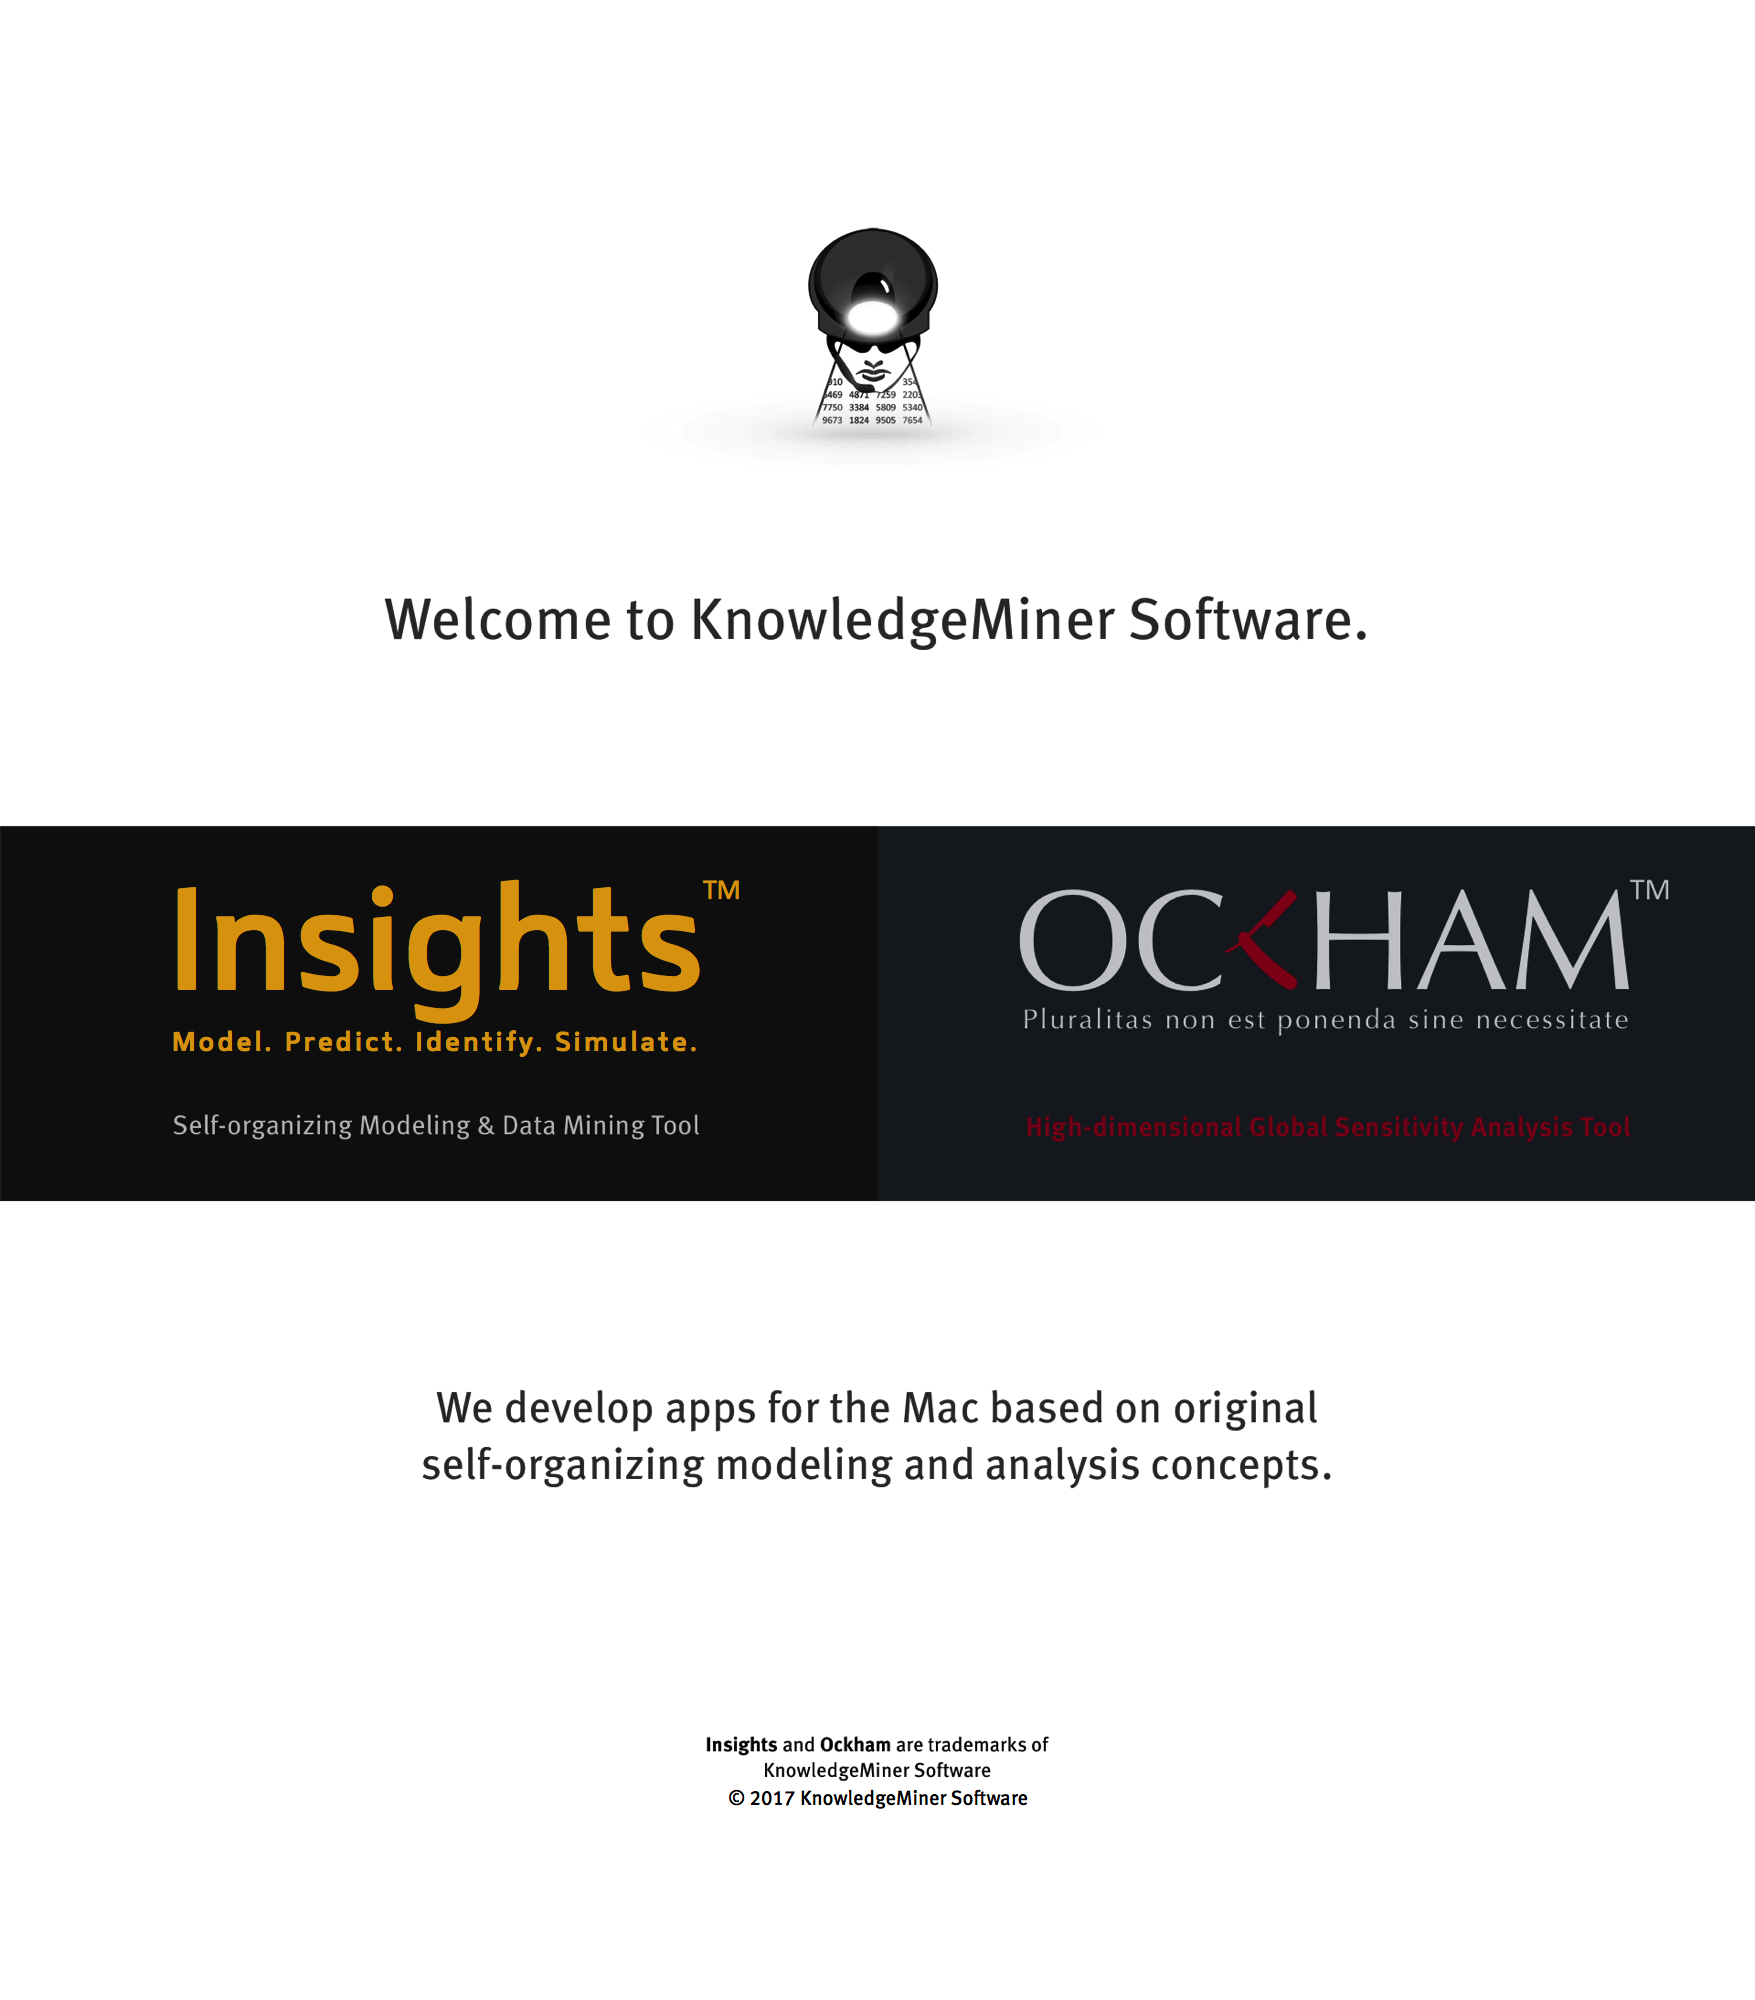 Welcome to KnowledgeMiner Software. We develop apps for the Mac based on original self-organizing modeling and analysis concepts, Insights and Ockham. KnowledgeMiner Insights and Ockham is outstanding parallel 64-bit self-organizing data mining and sensitivity analysis software based on sophisticated deep learning GMDH algorithms. It is designed to extract new knowledge in form of predictive analytical models from noisy data stored in Excel or other data sources, automatically. Implement your predictive models generated with Insights in your research or web projects easily by ready-to-use Python, Objective-C, AppleScript, Matlab, or Excel code.